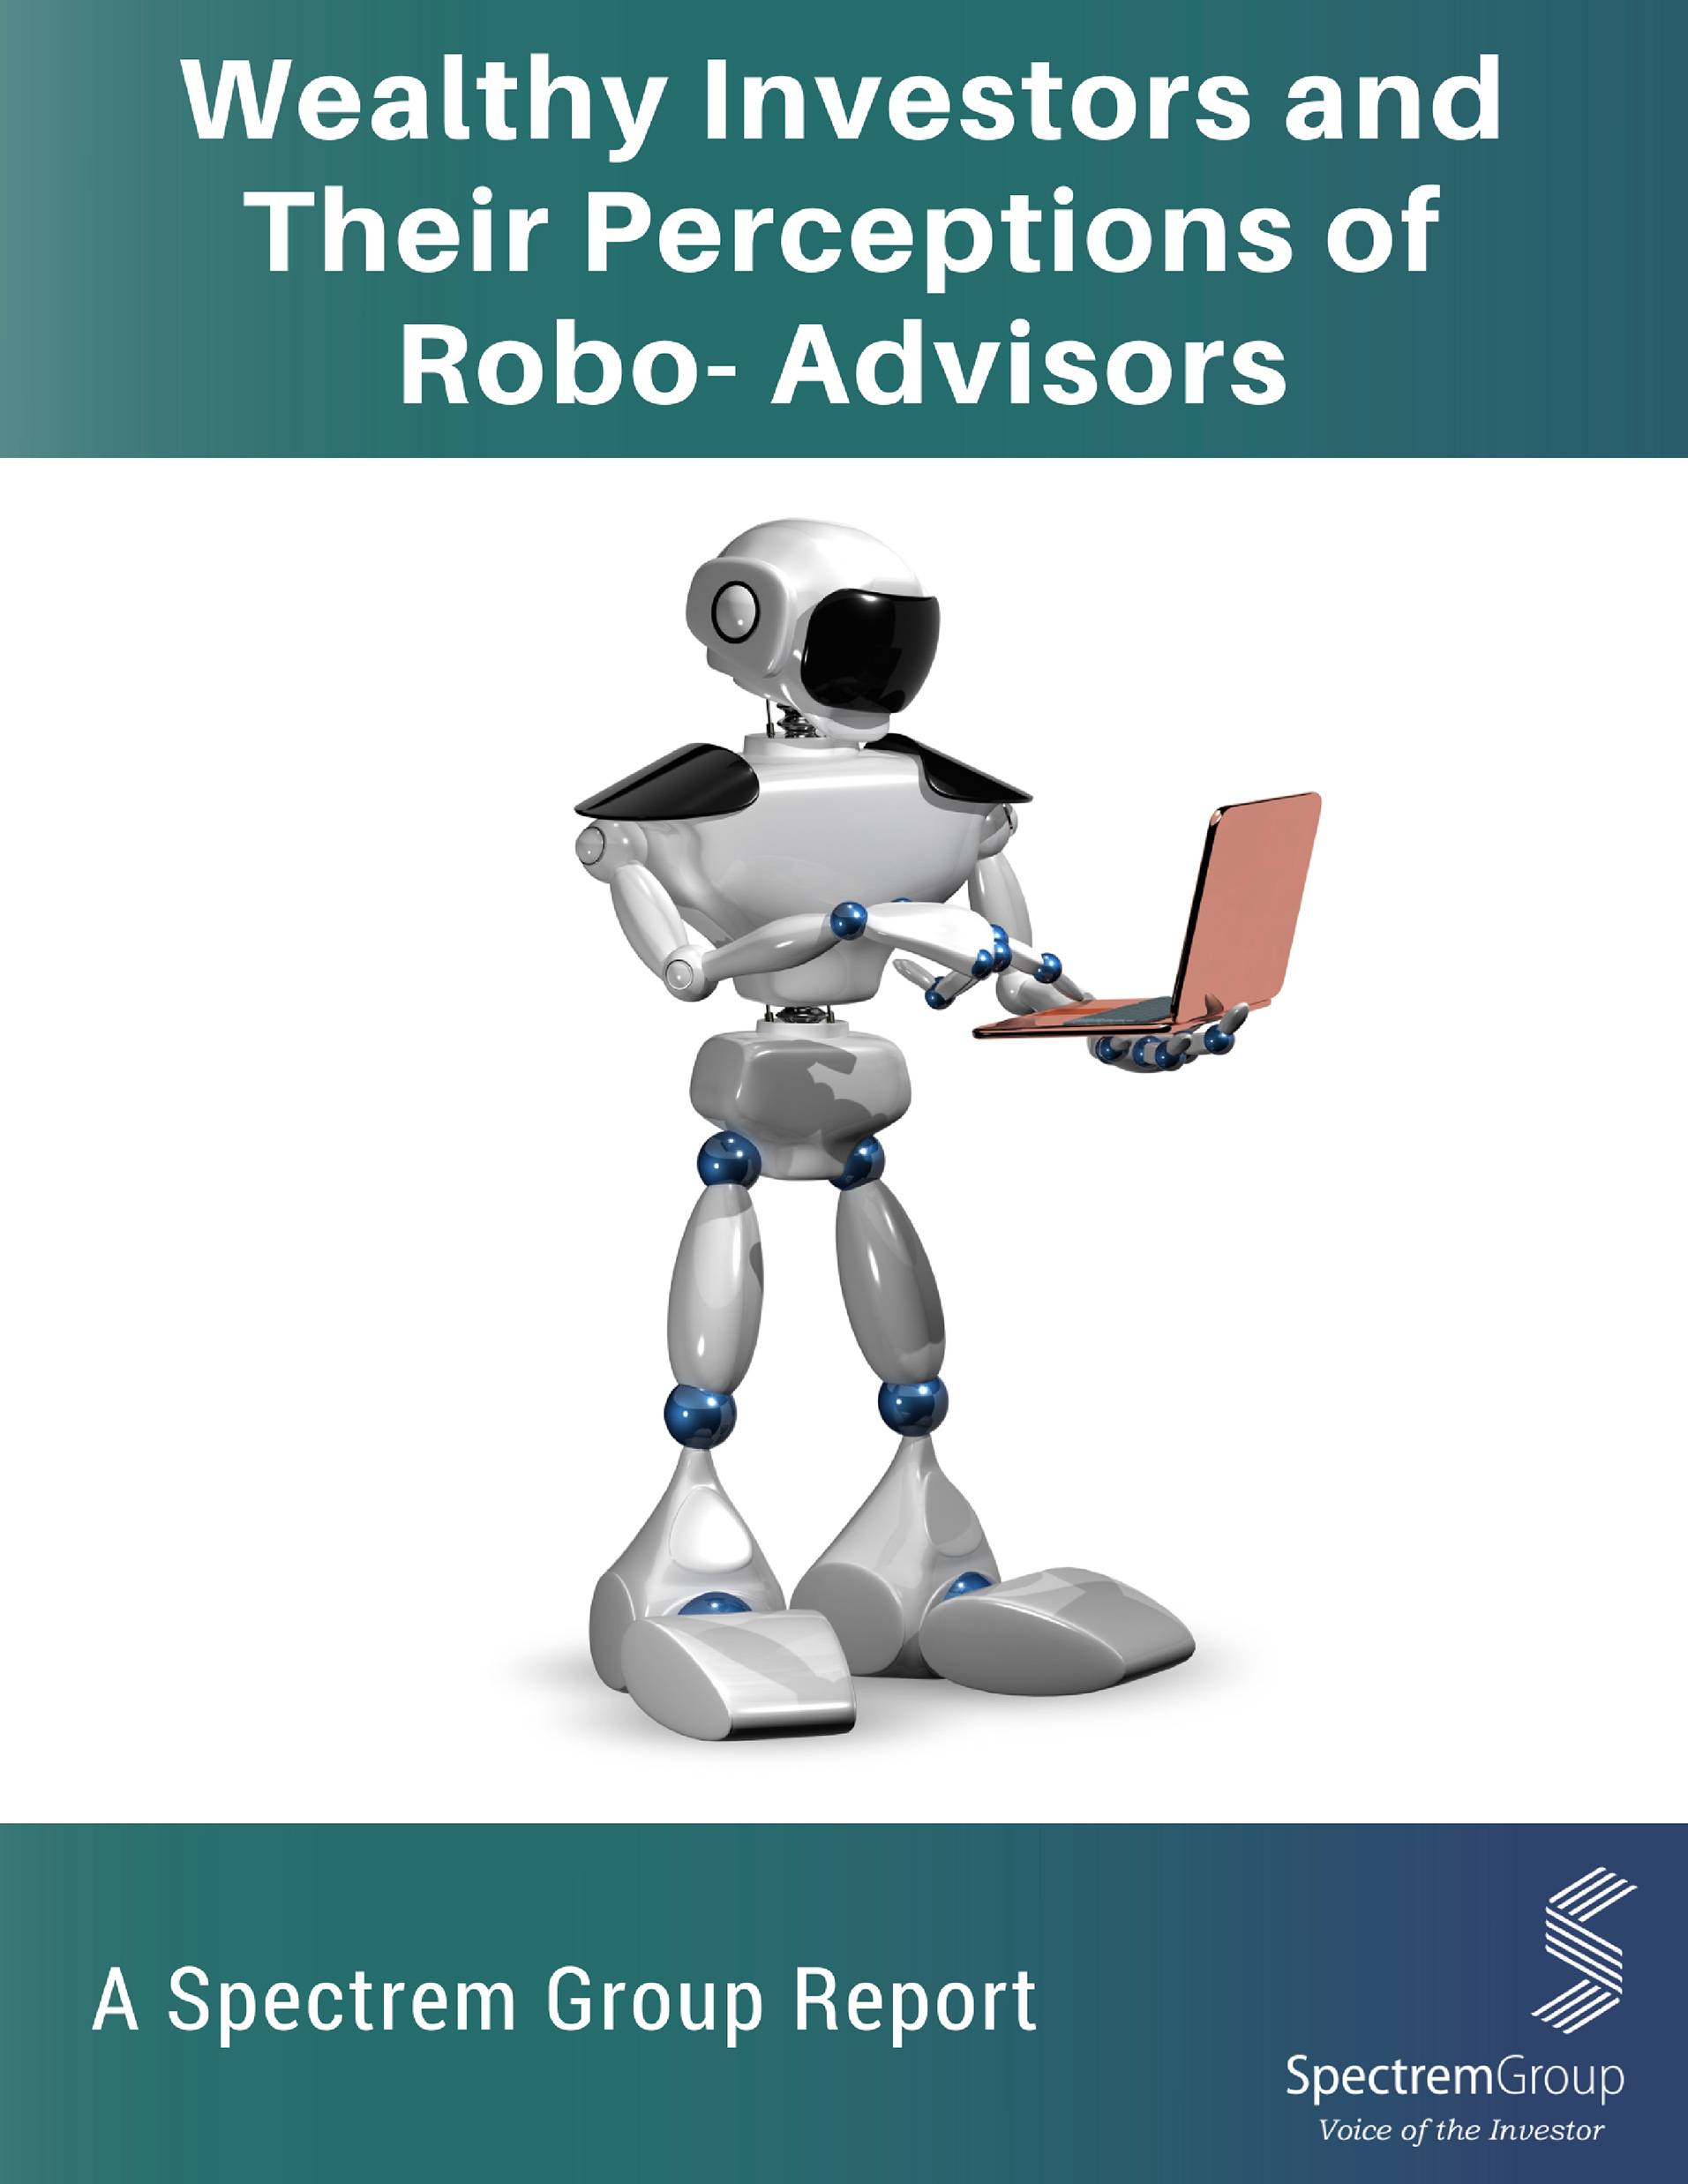 Wealthy Investors and Their Perceptions of Robo-Advisors